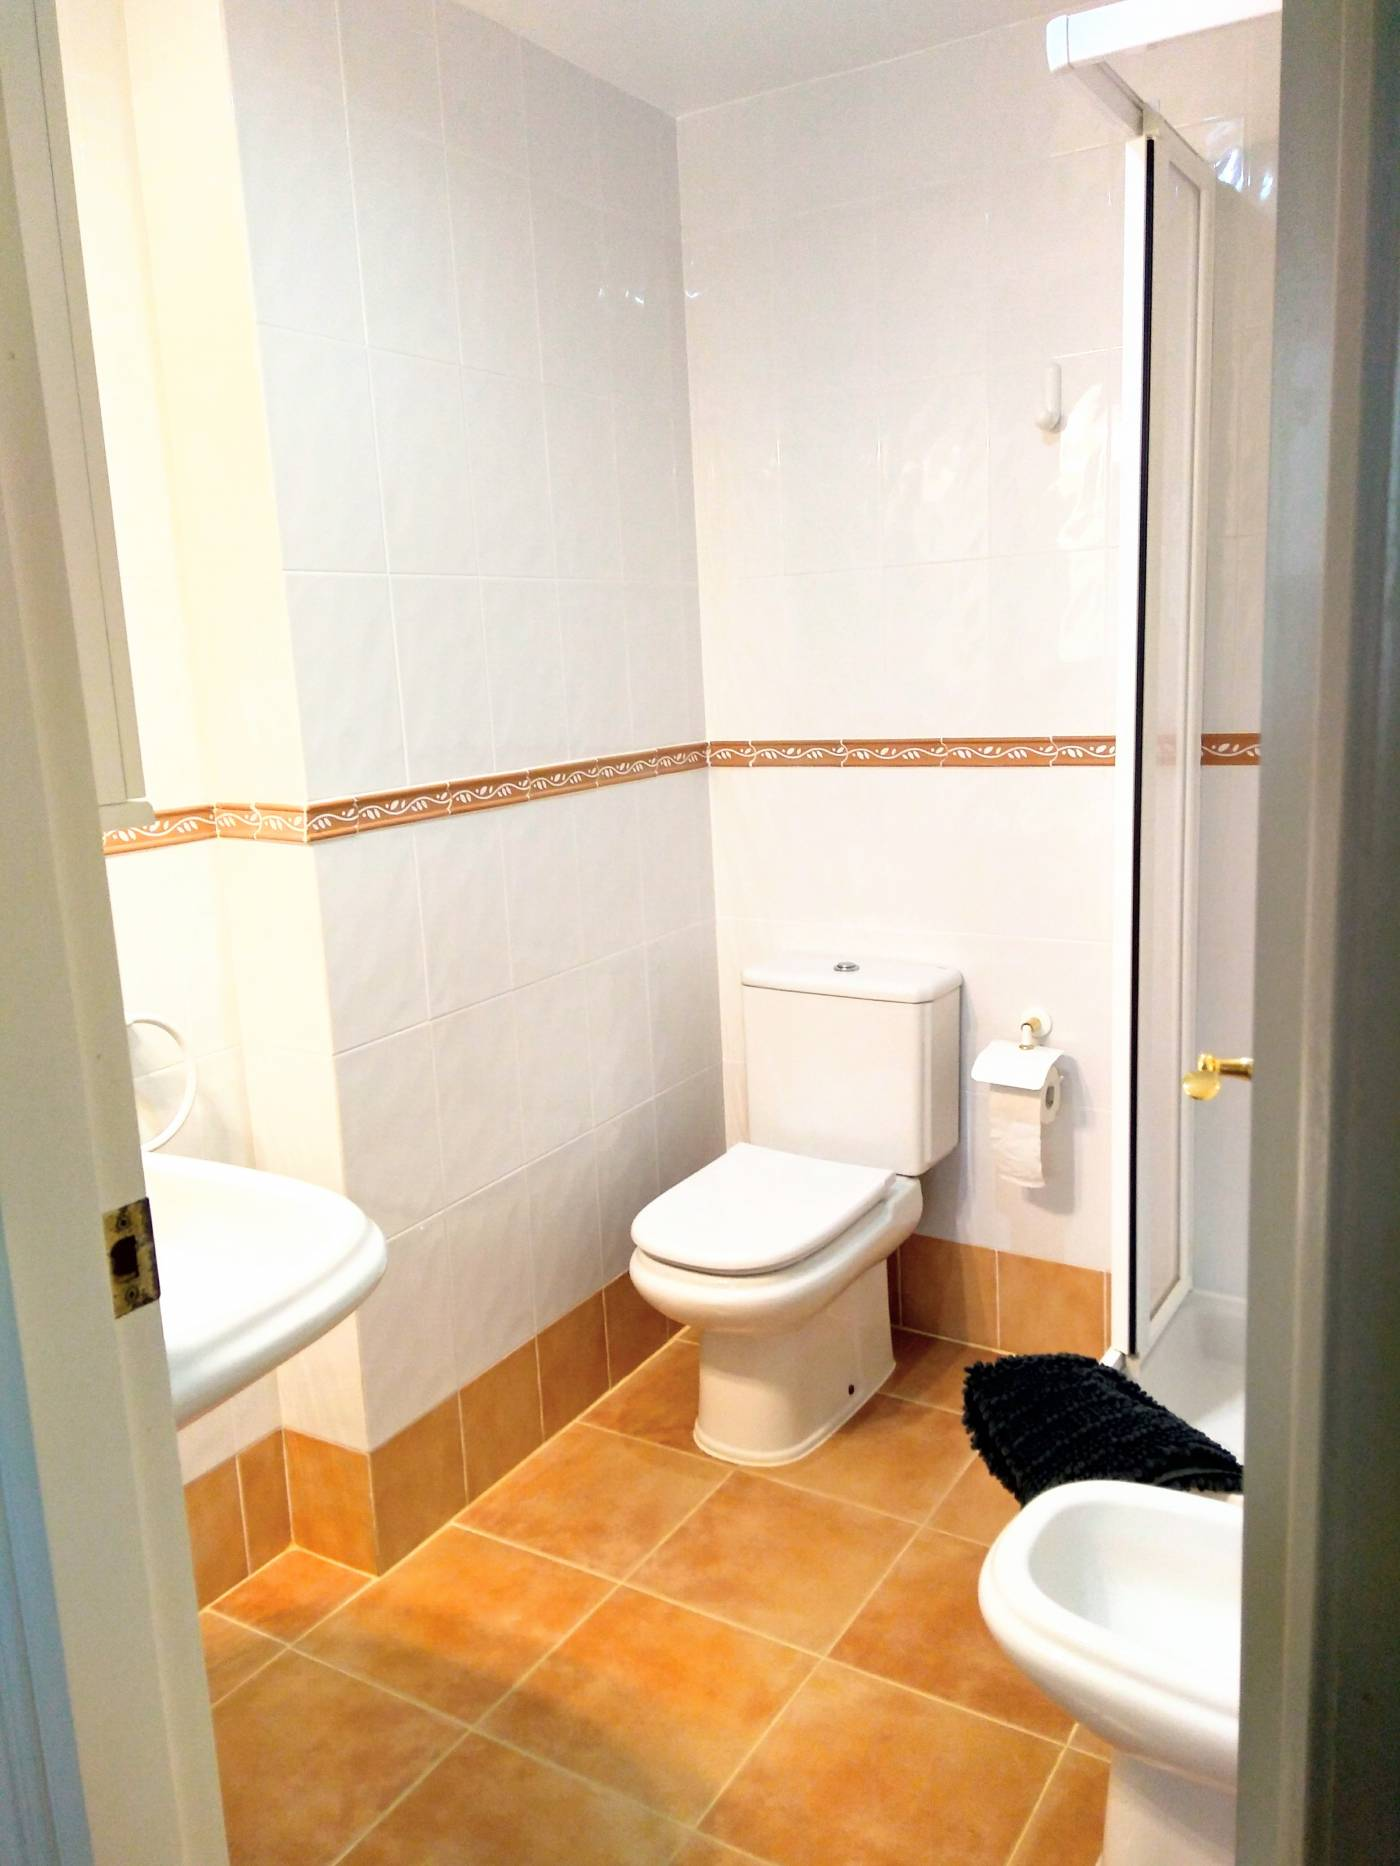 toilet, shower, bidet, sink, tiles,